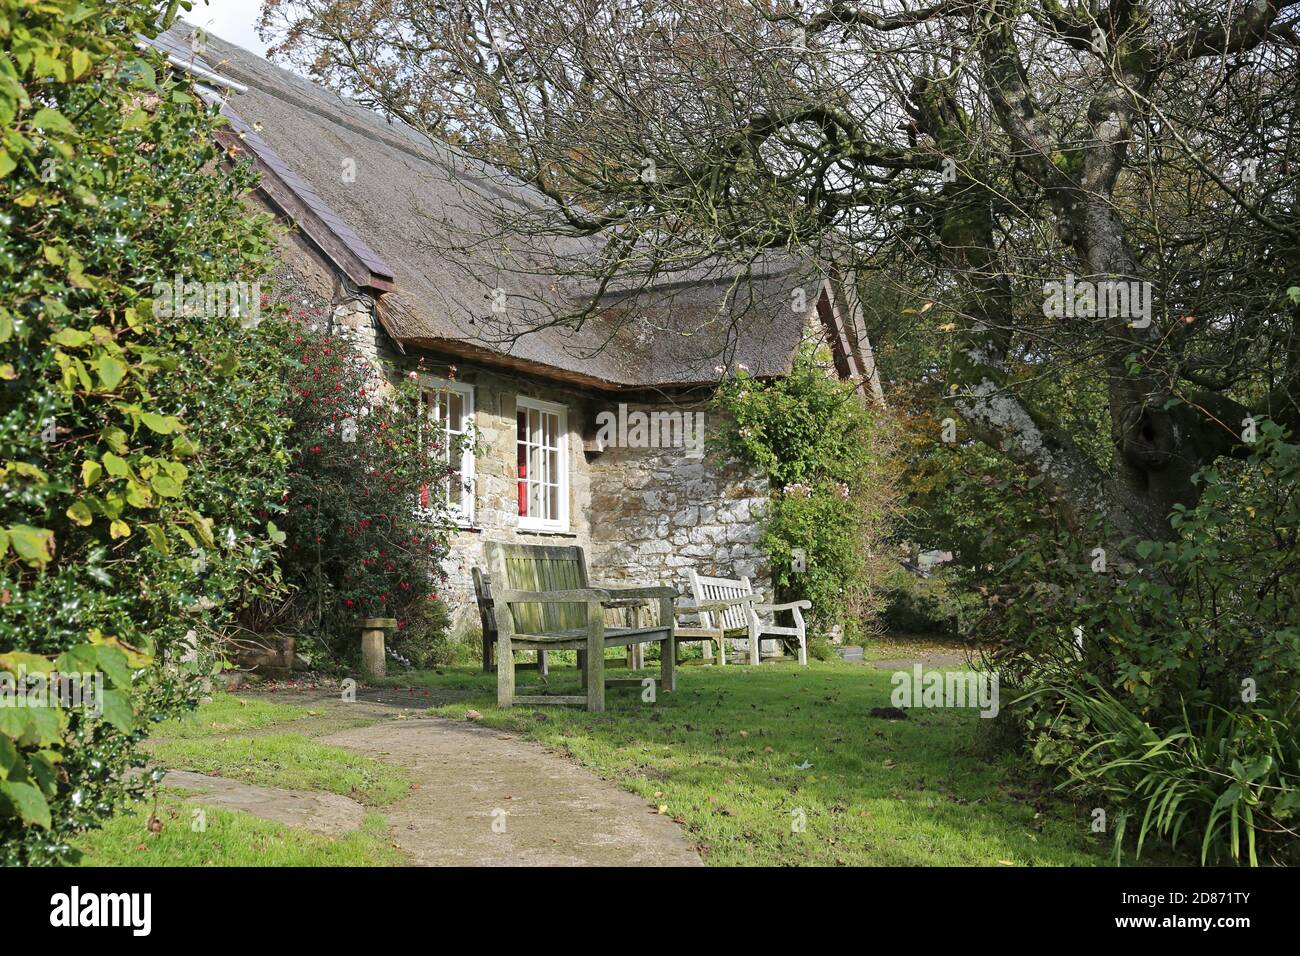 Pales Quaker Meeting House, Llandegley, Llandrindod Wells, Radnorshire, Powys, Wales, Great Britain, United Kingdom, UK, Europe Stock Photo